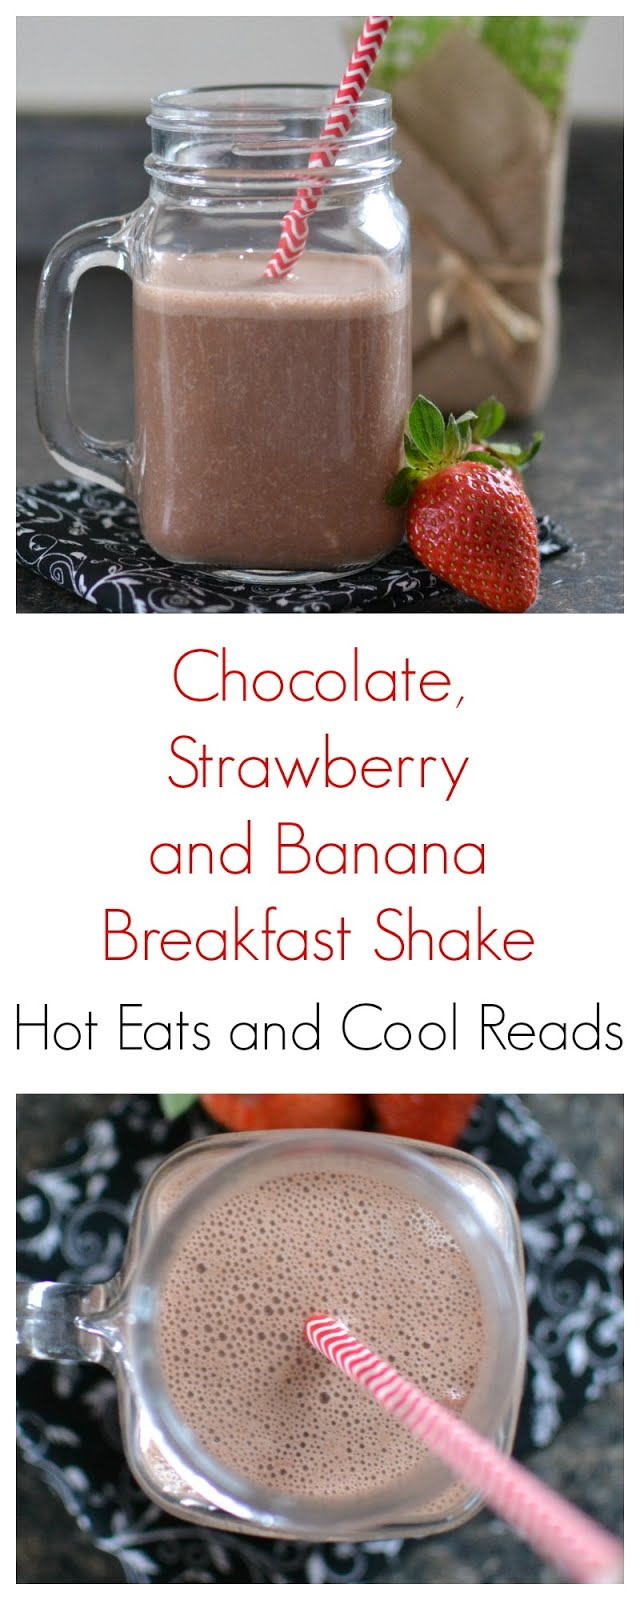 Hot Eats and Cool Reads: Chocolate, Strawberry and Banana ...